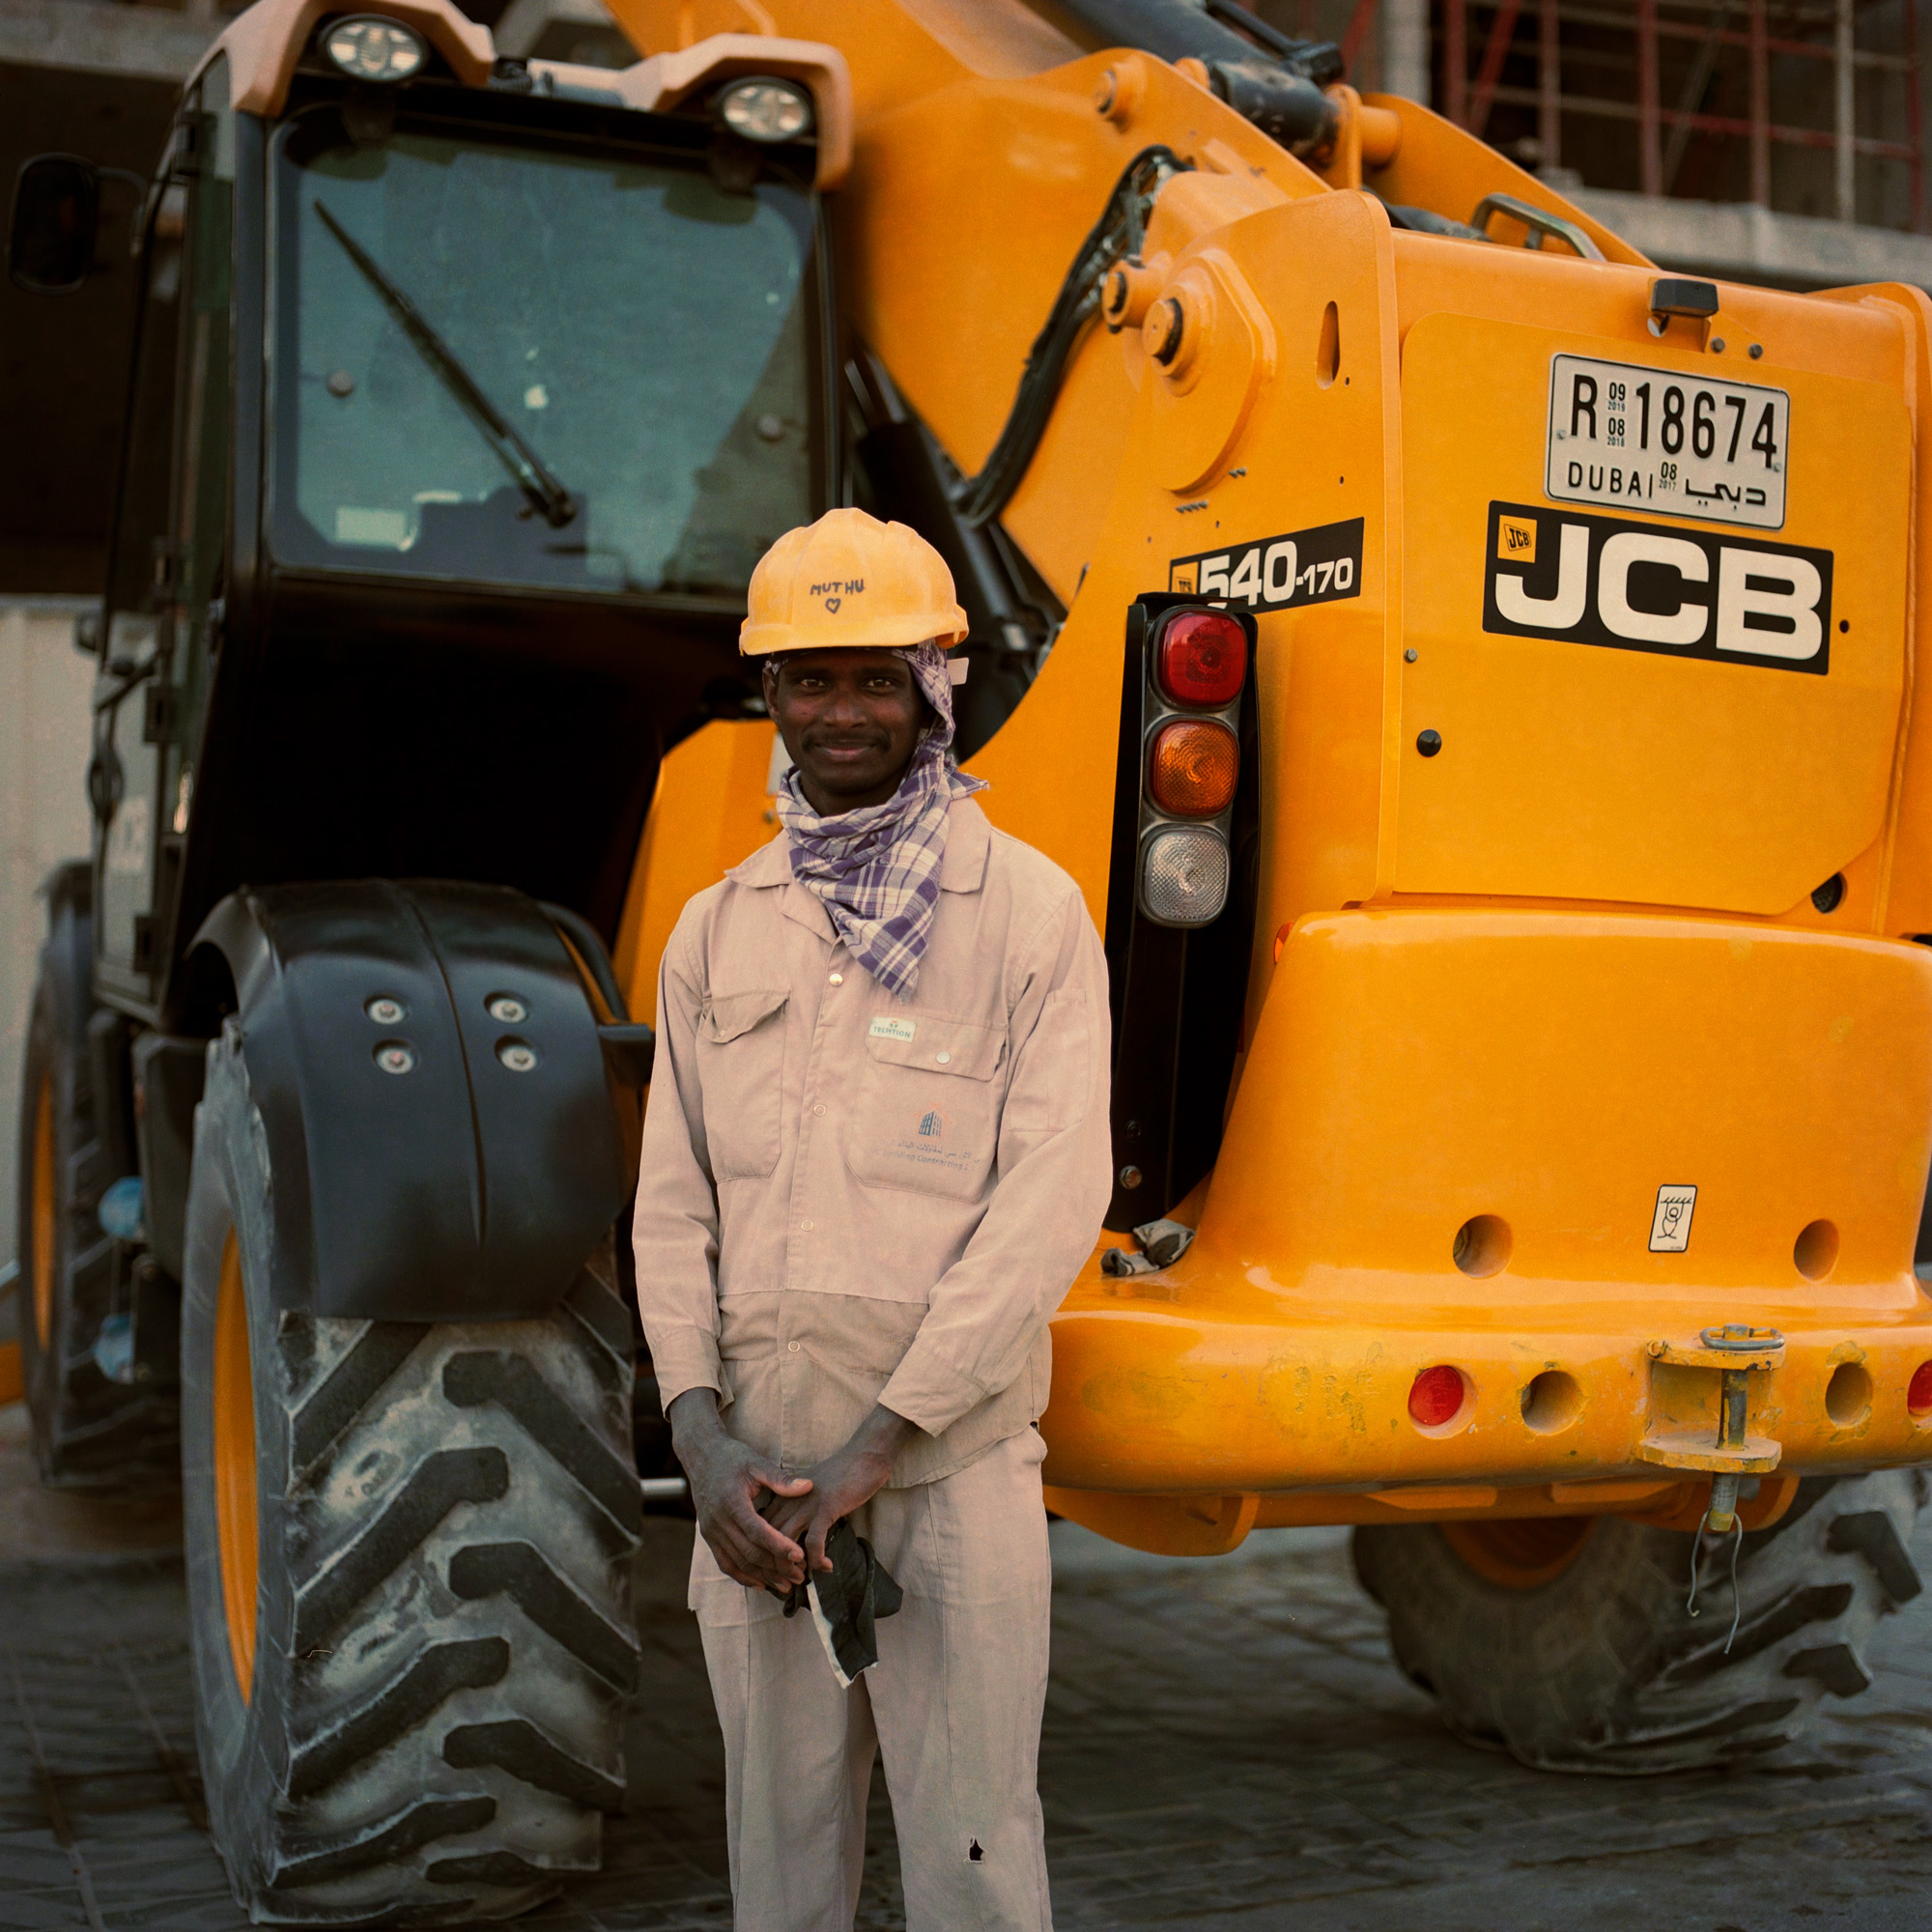 Indian construction worker, in front of digger. Dubai Labourers.